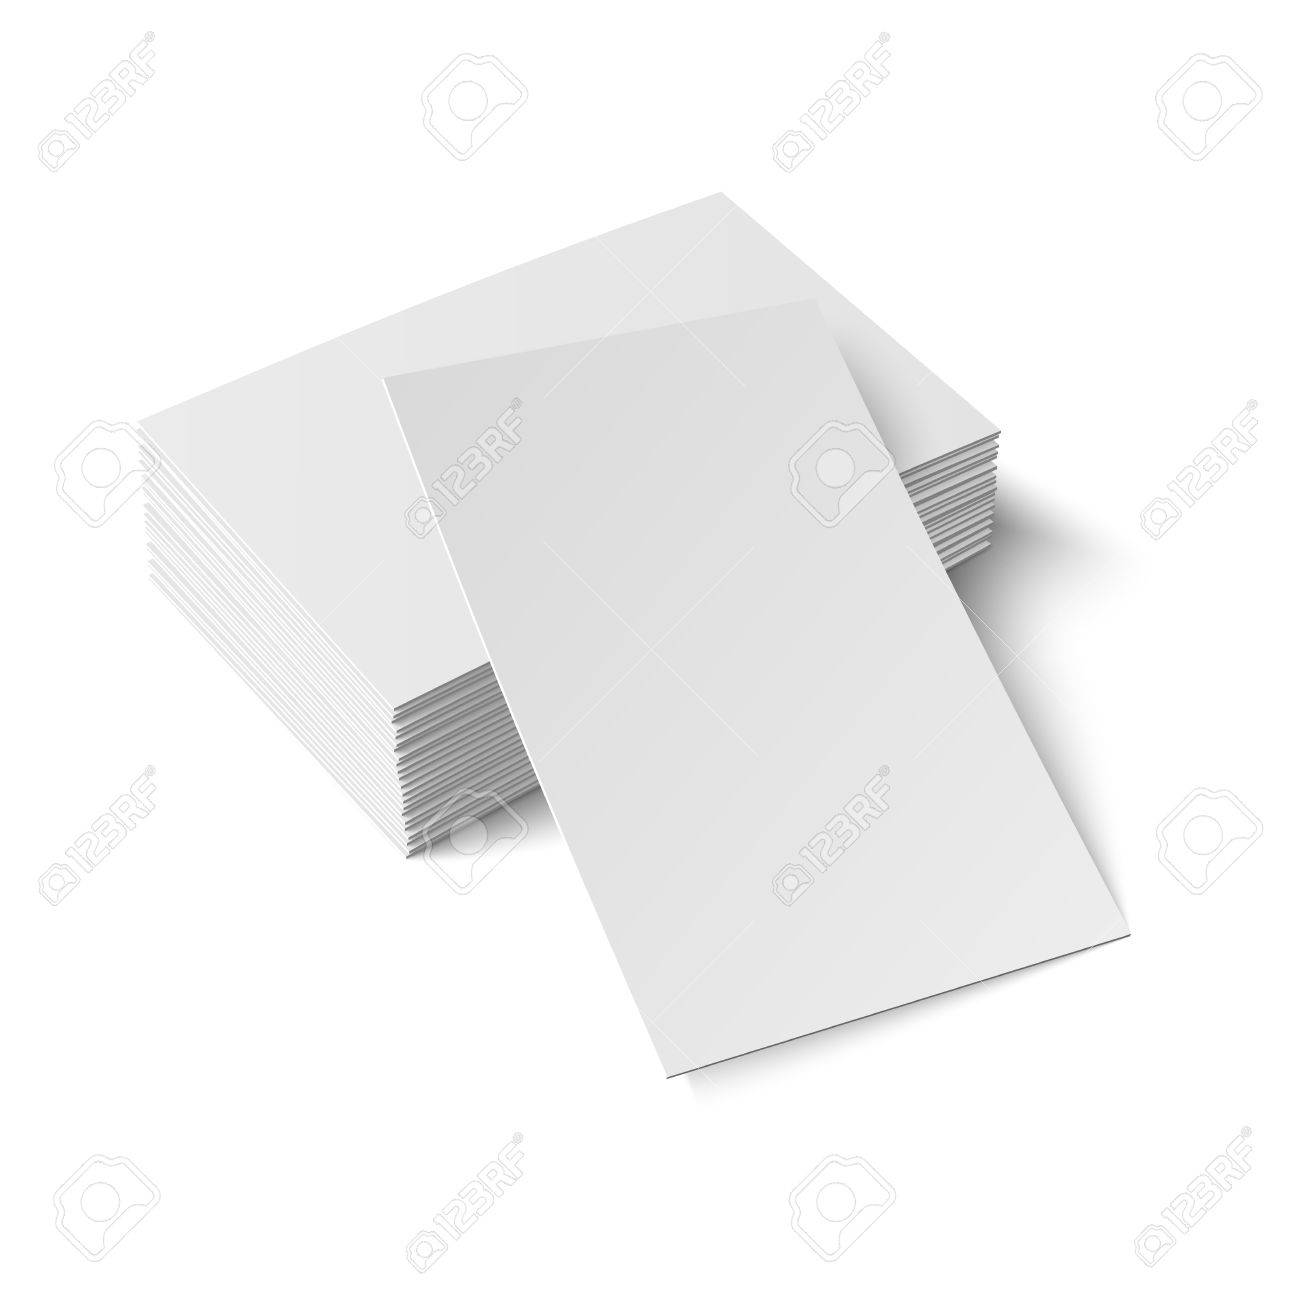 Blank Business Cards Uk Choice Image - Free Business Cards